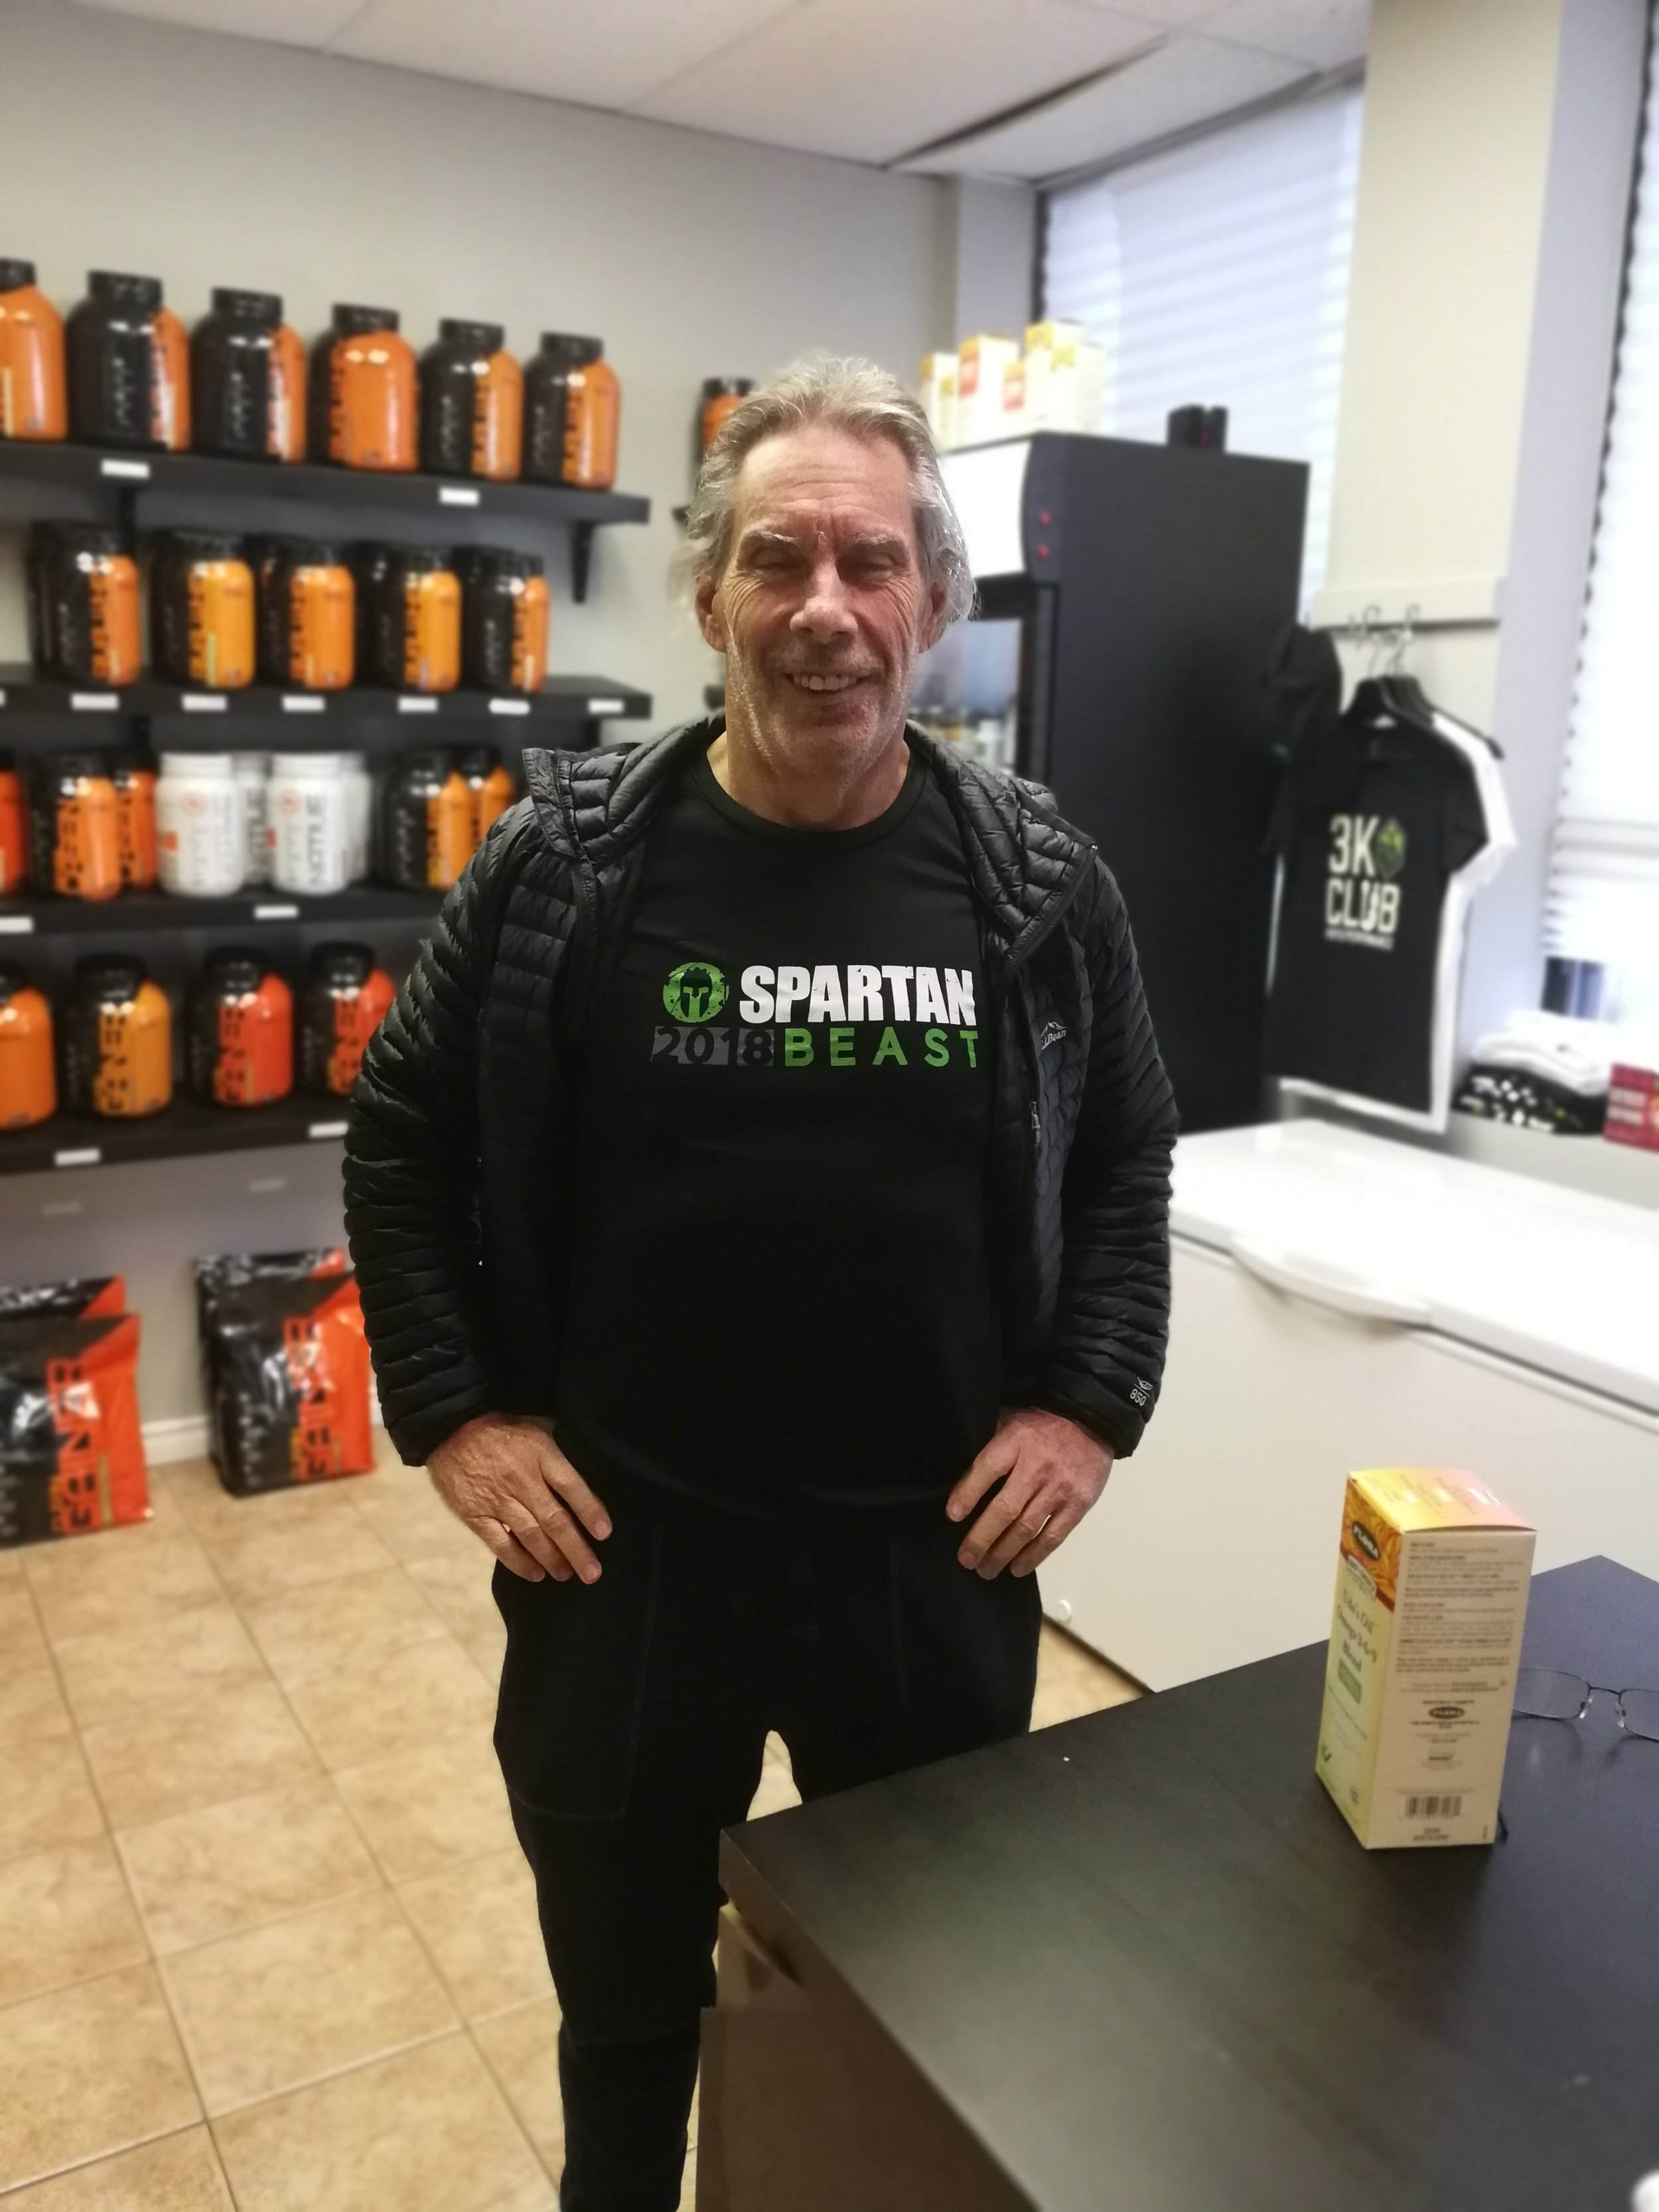 Mike Buying some Udo oil + DHA & Showing off his cool shirt